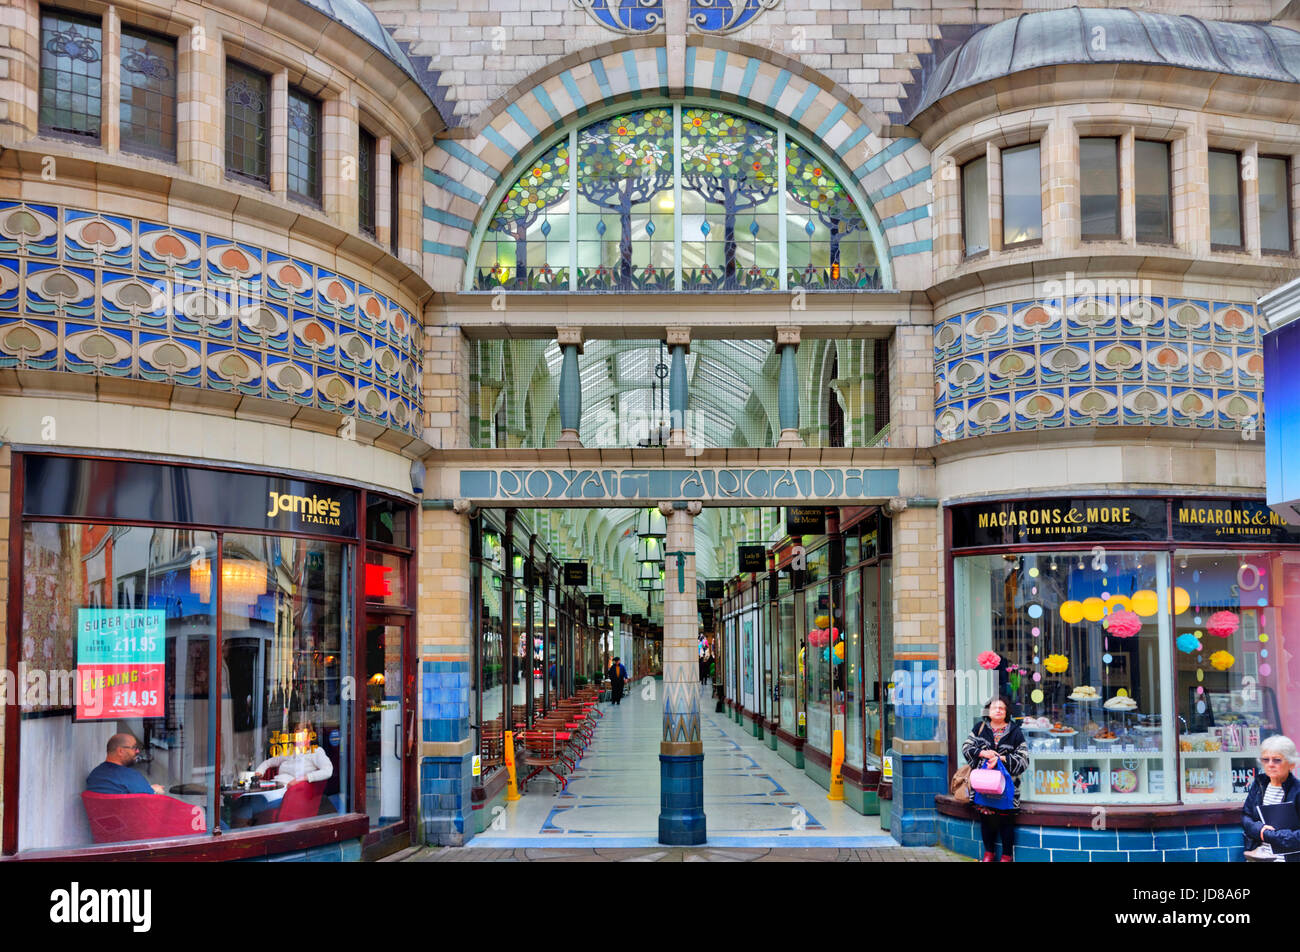 Royal Arcade shopping area in Norwich, England - Stock Image